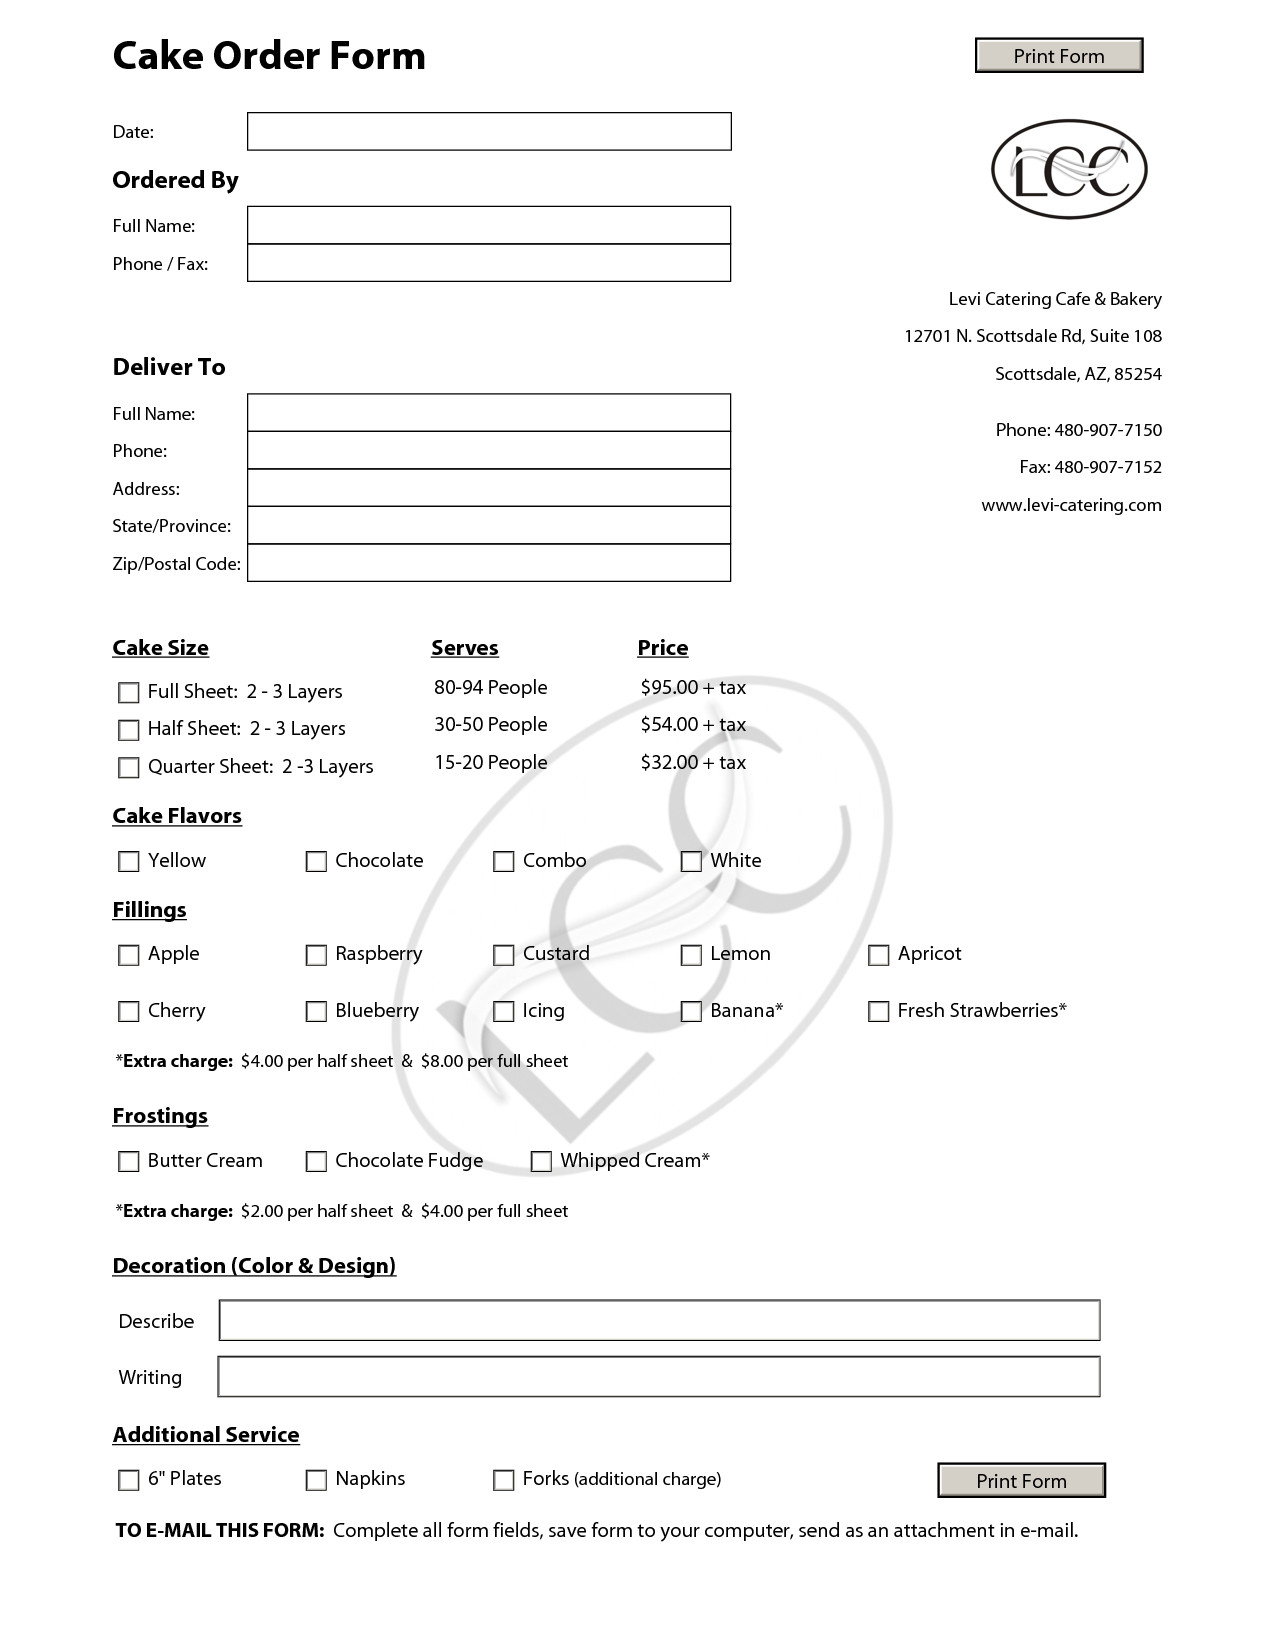 Free Cake Contract Template Cake order forms On Pinterest